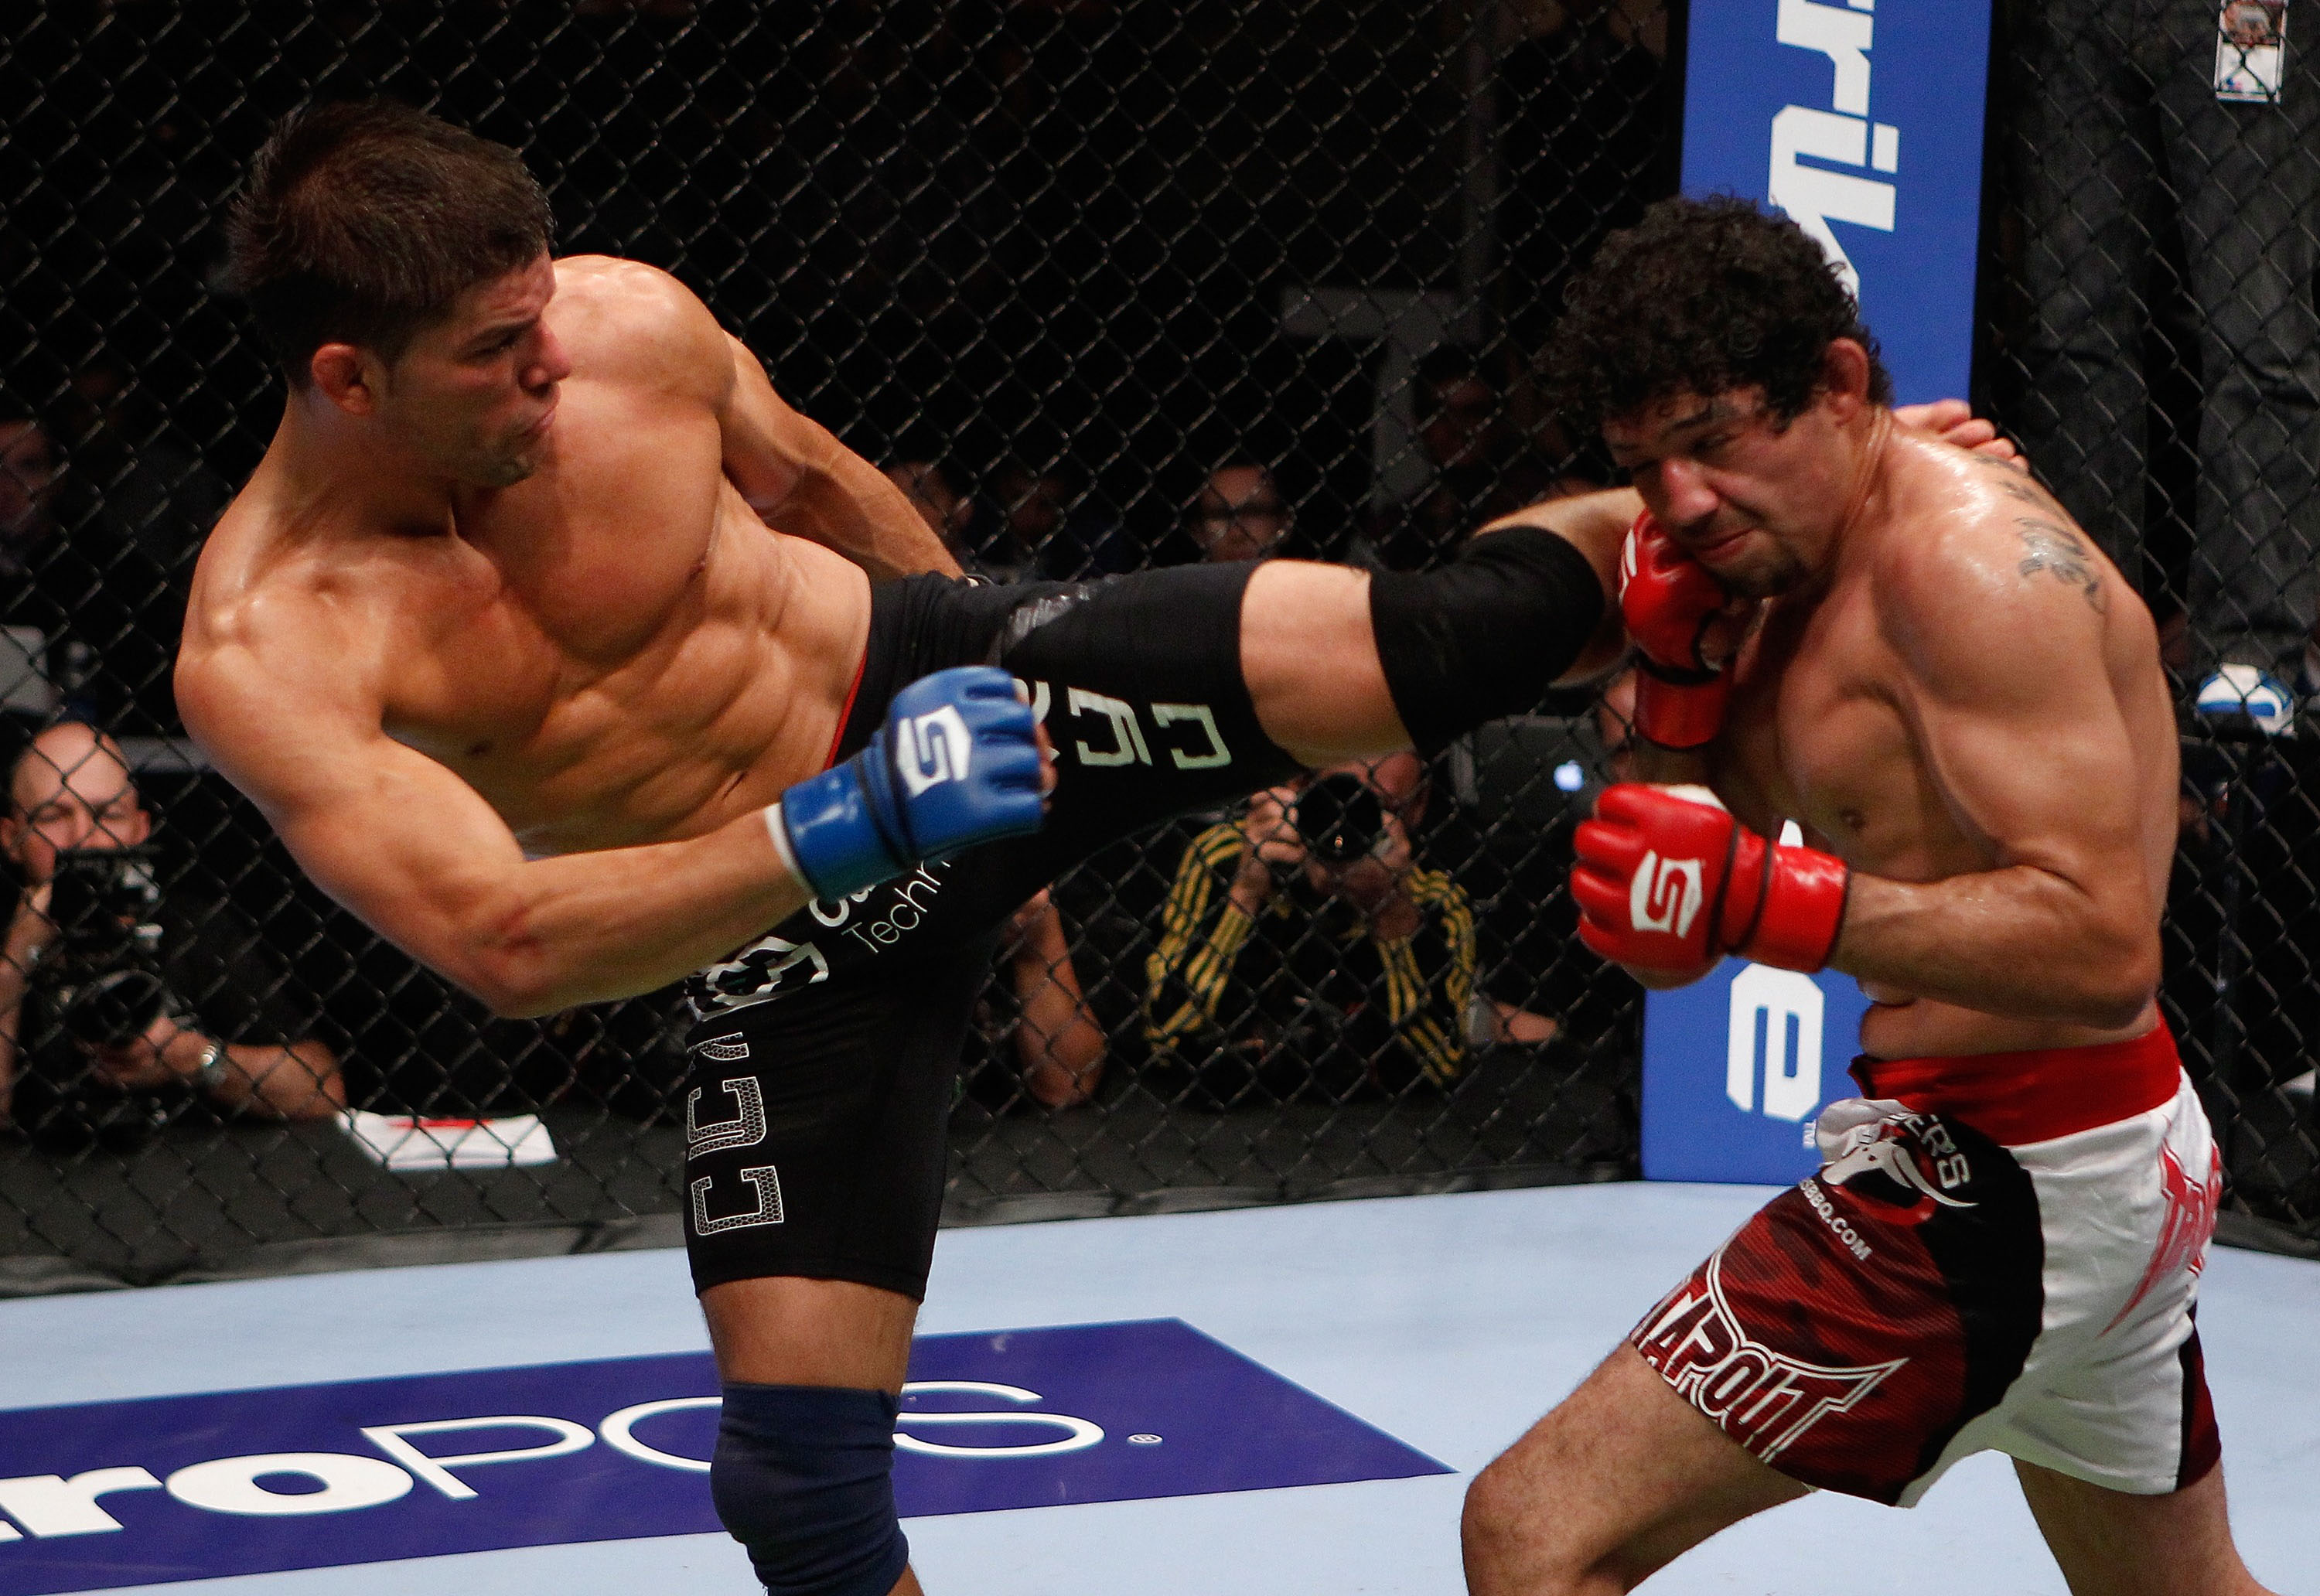 Thomson kicks Melendez